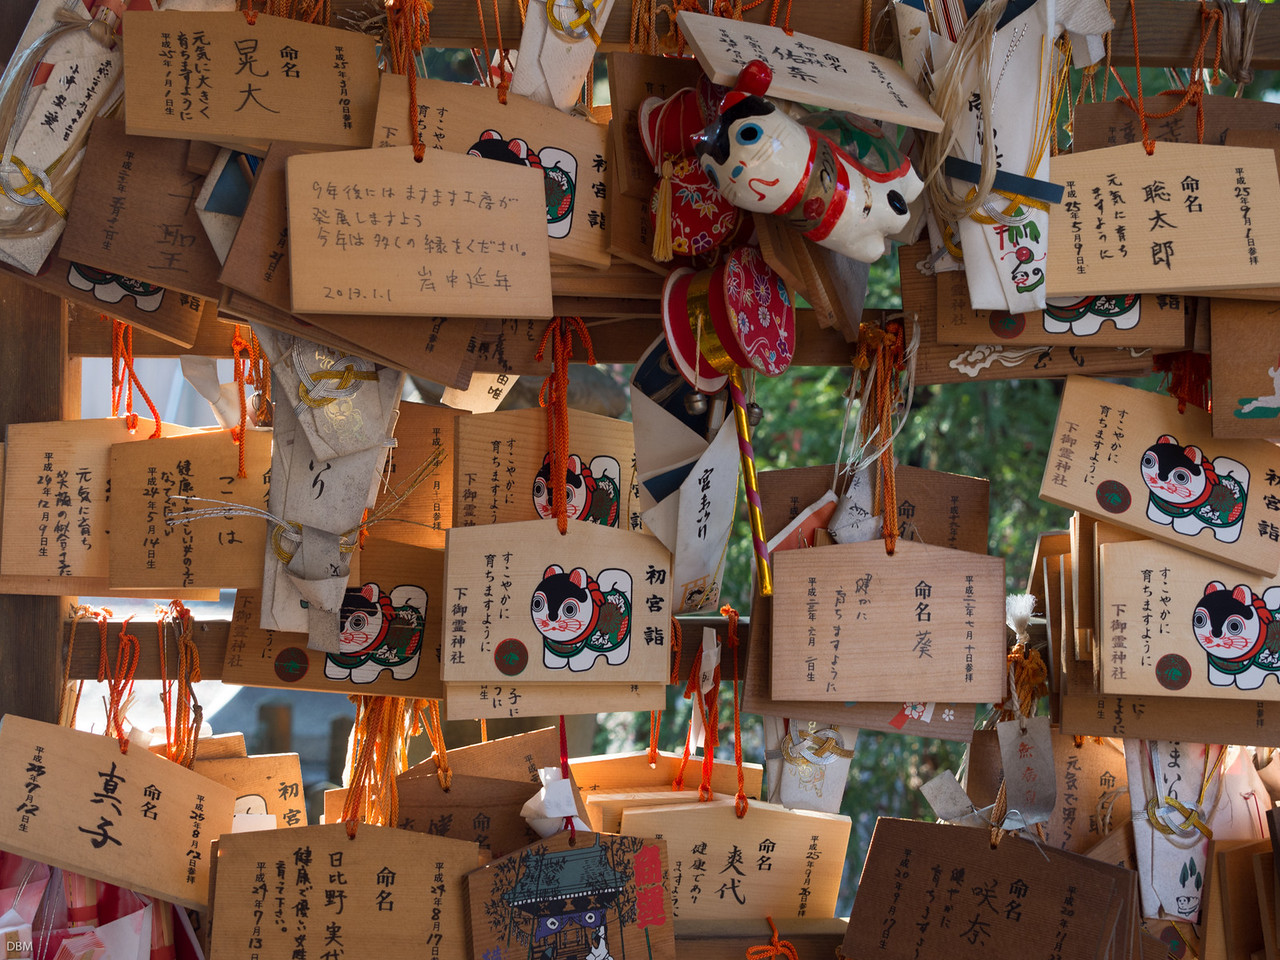 These are prayer items in a temple. It's easy to see now how Hello Kitty became popular...